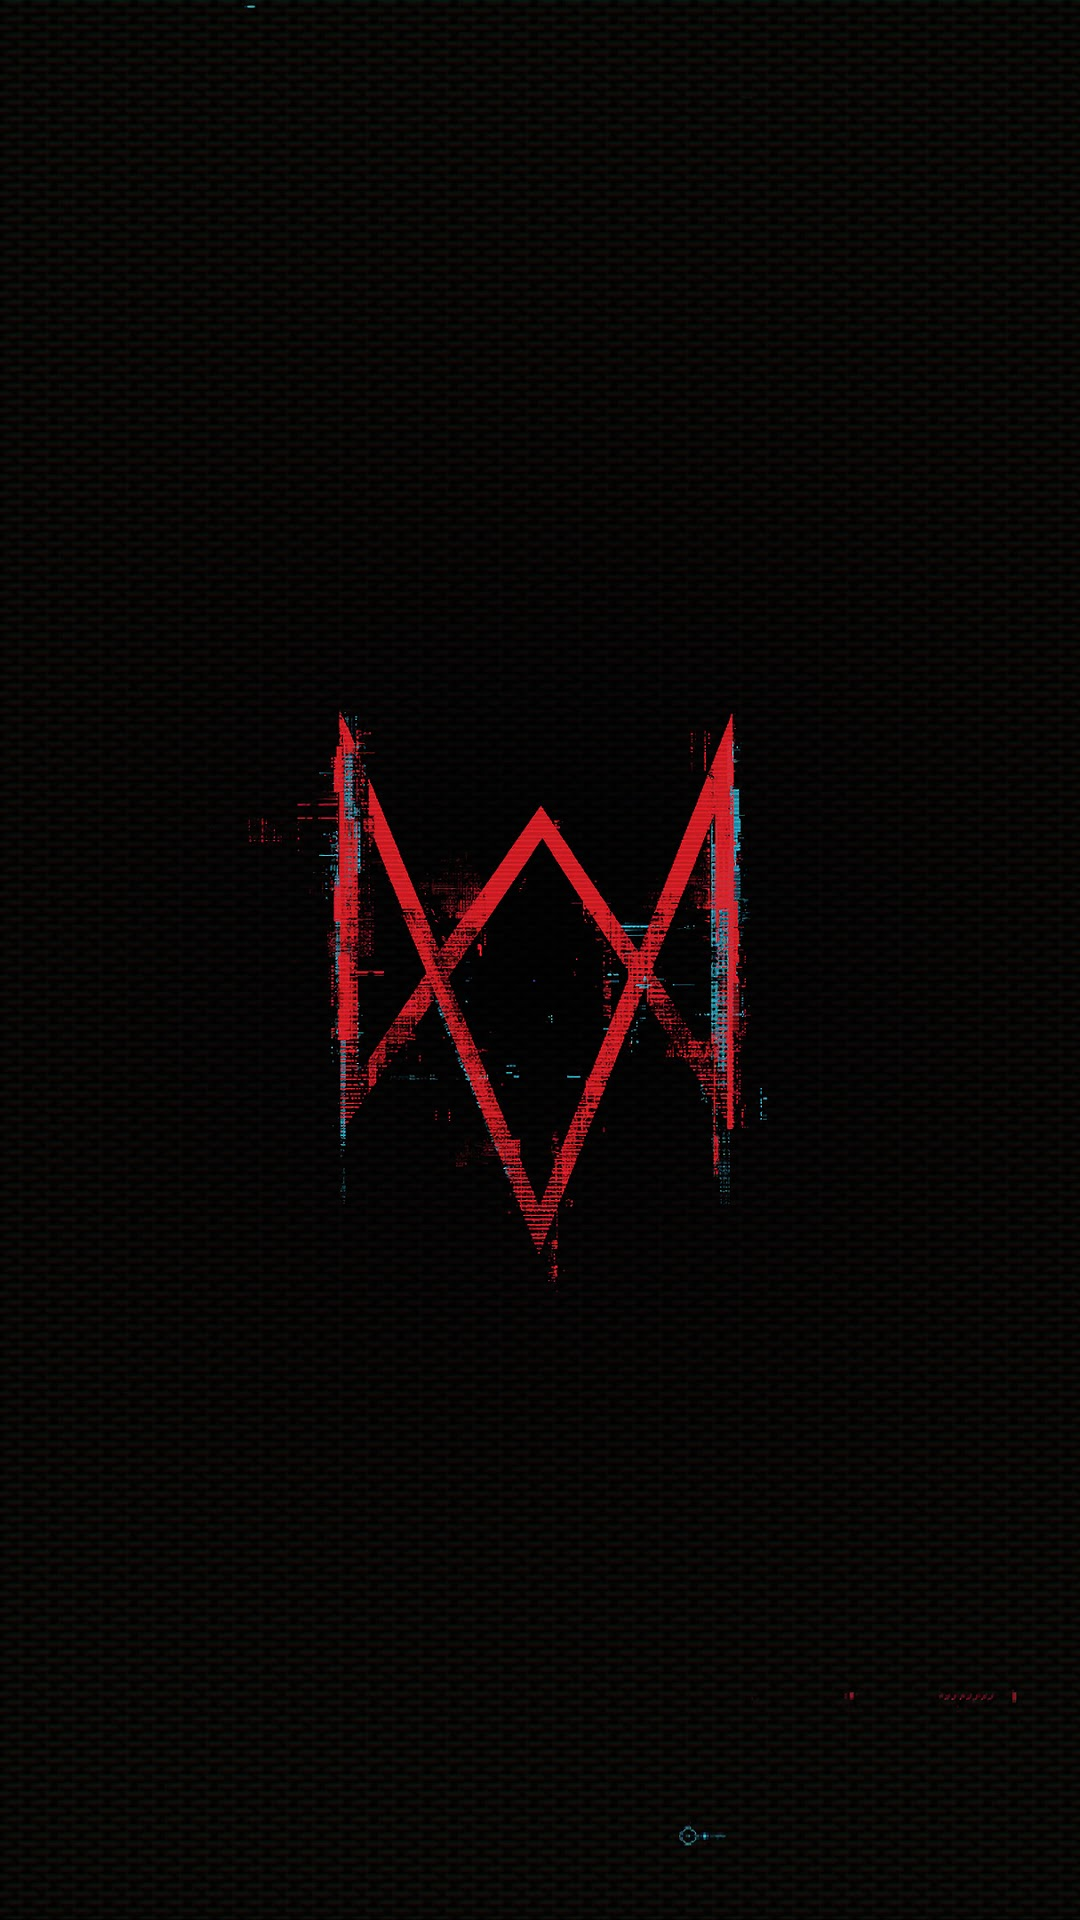 Watch Dogs Legion Logo 4k Wallpaper 2